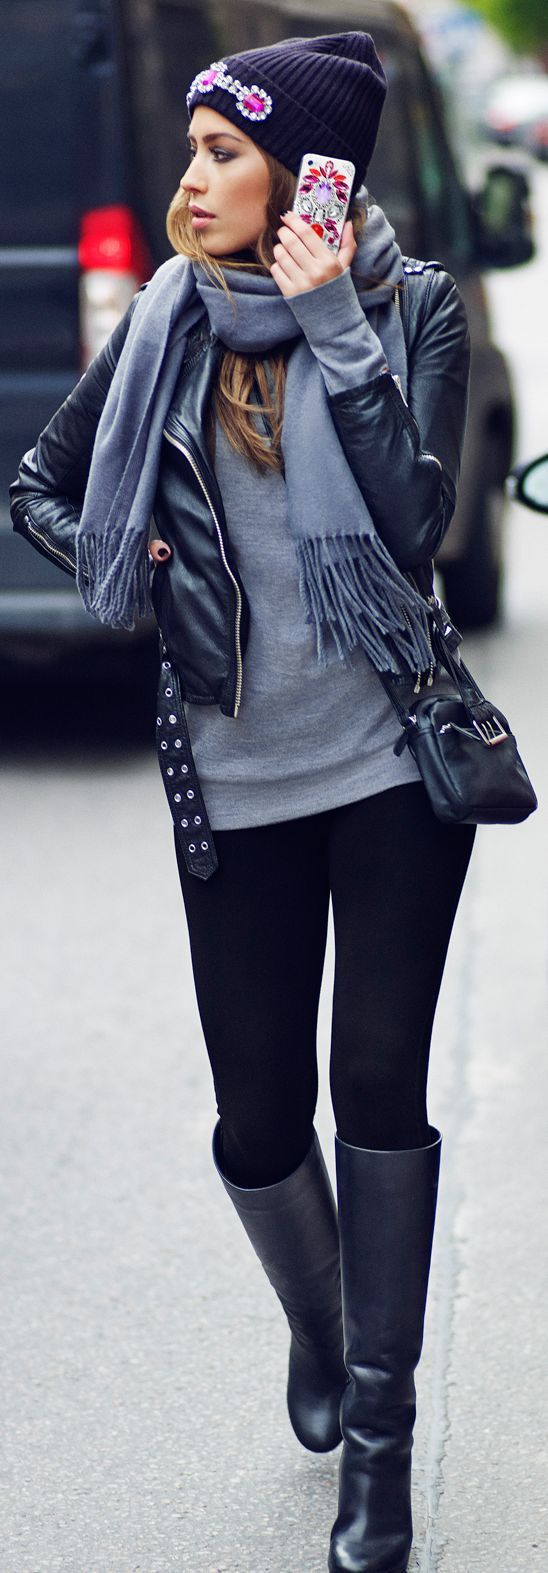 Grey long sleeve shirt and black leggings